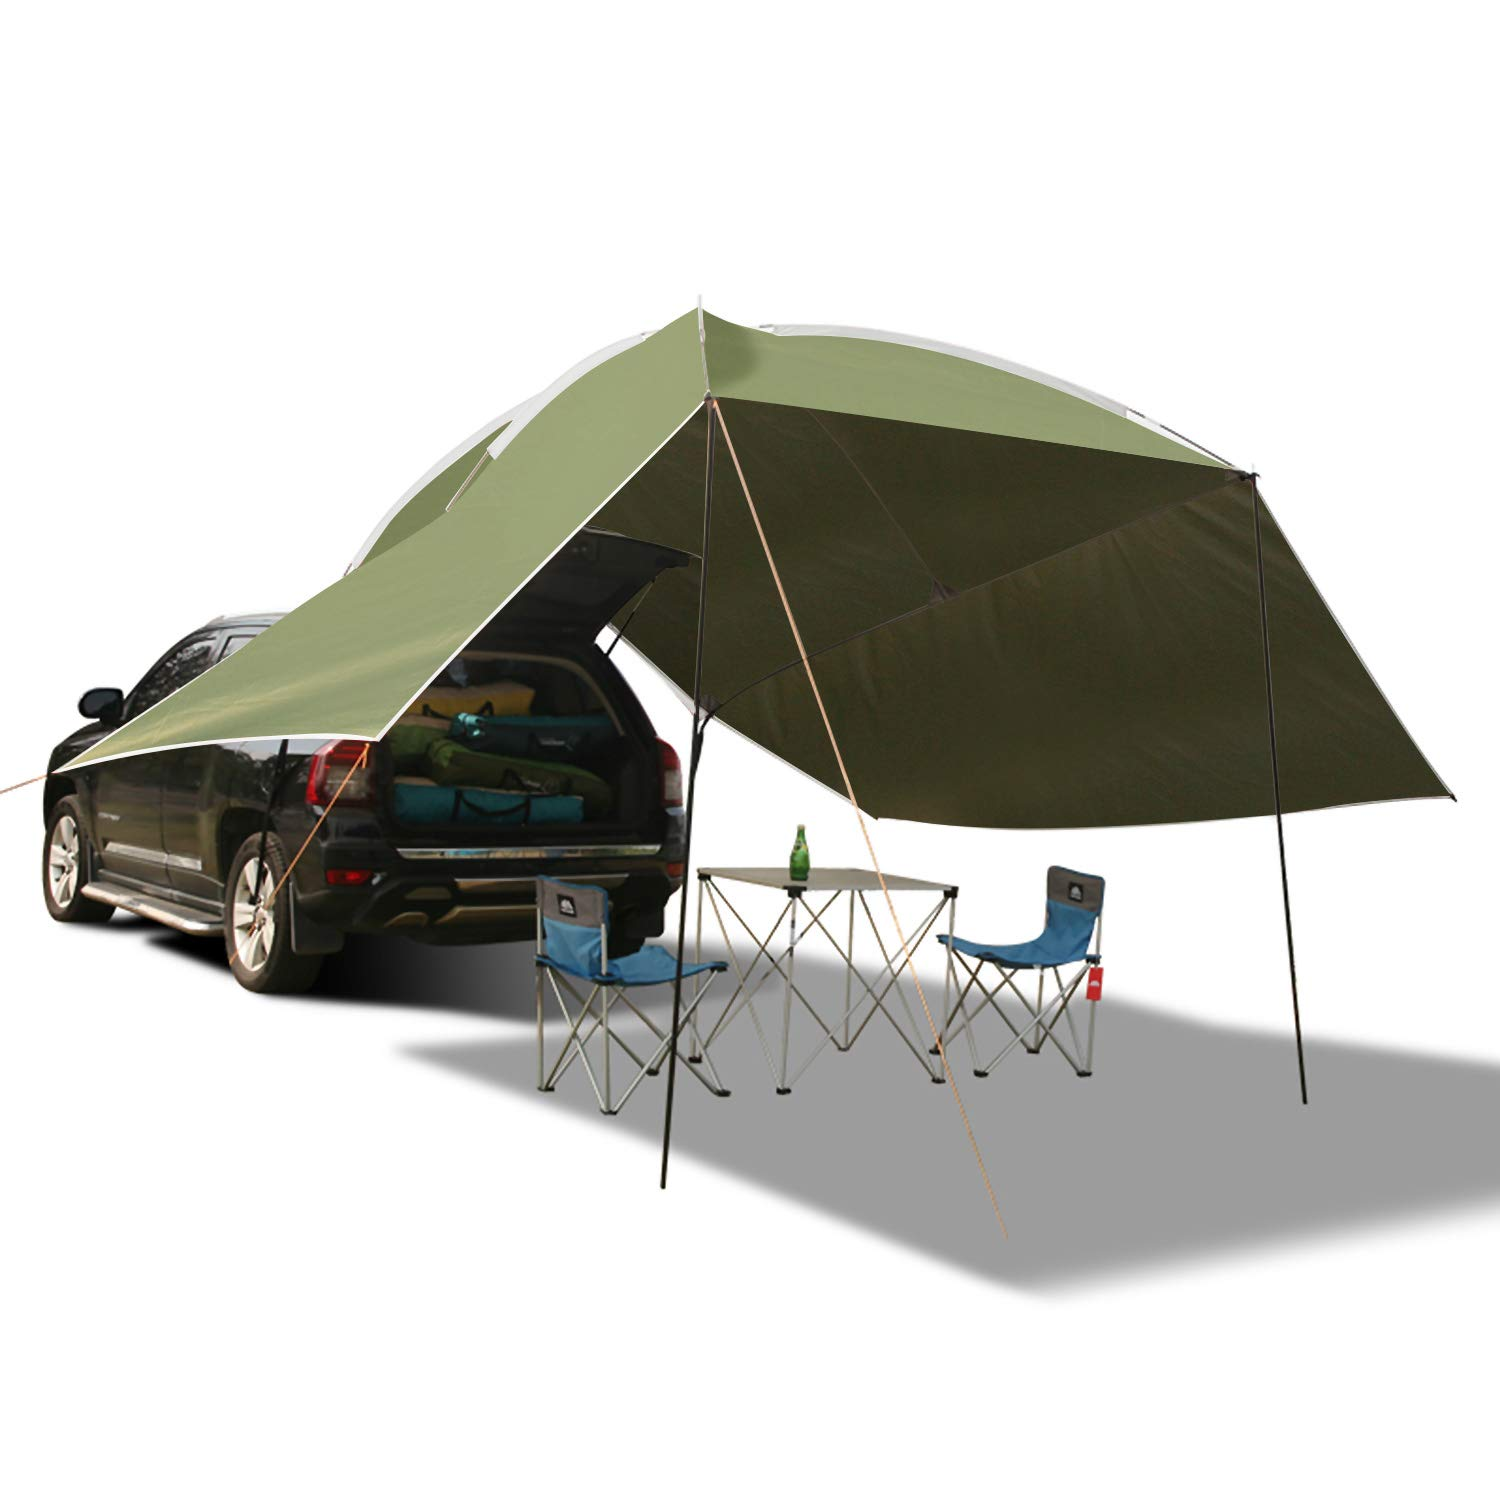 REDCAMP Waterproof Car Awning Sun Shelter, Portable Auto Canopy Camper Trailer Sun Shade for Camping, Outdoor, SUV, Beach Army Green/Grey